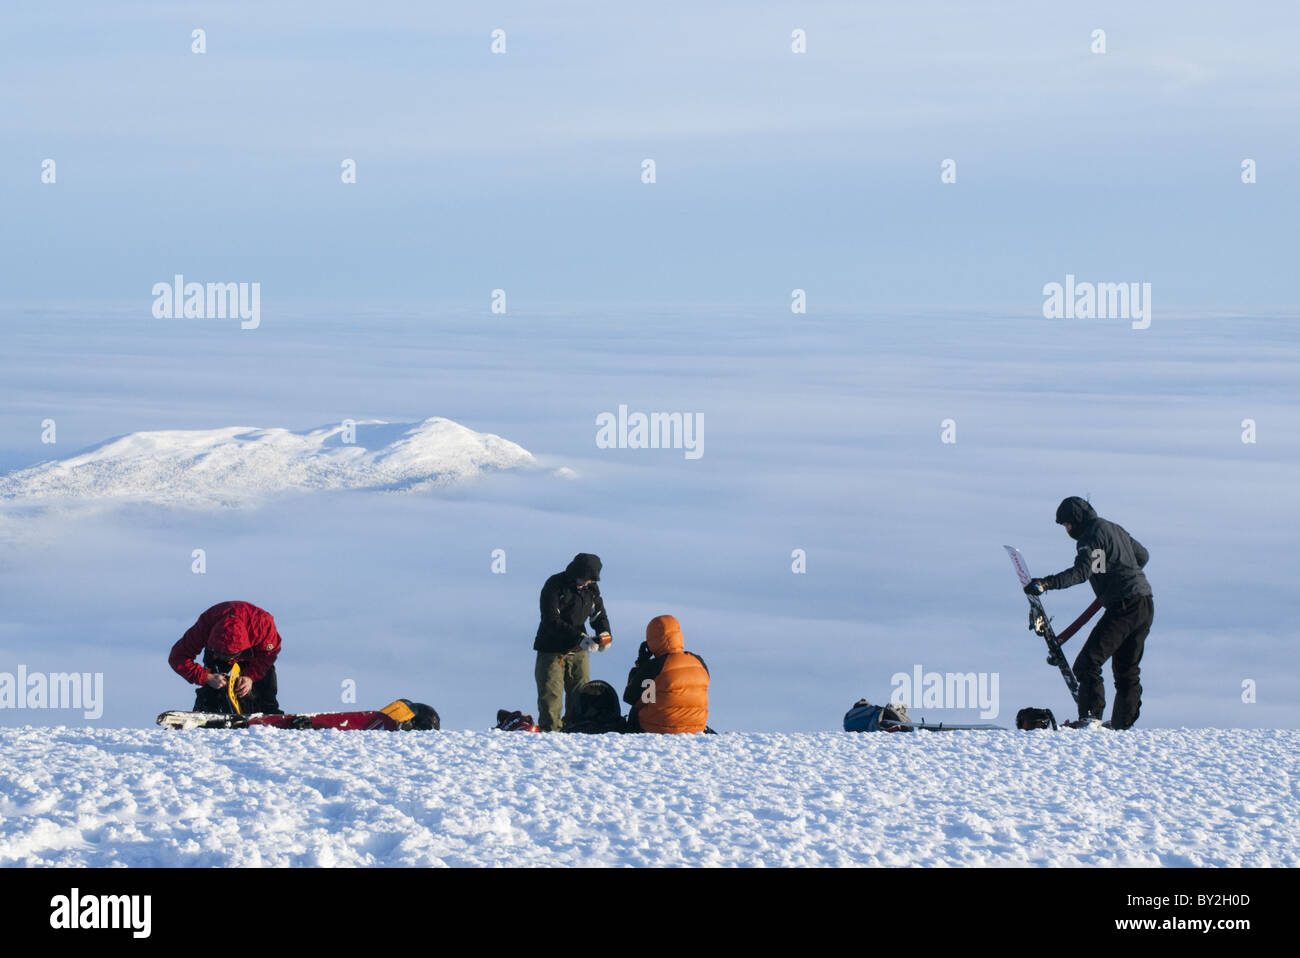 3 free skiers and a snowboarders getting ready for a ski-trip above the clouds in Kittelfjall, Sweden - Stock Image